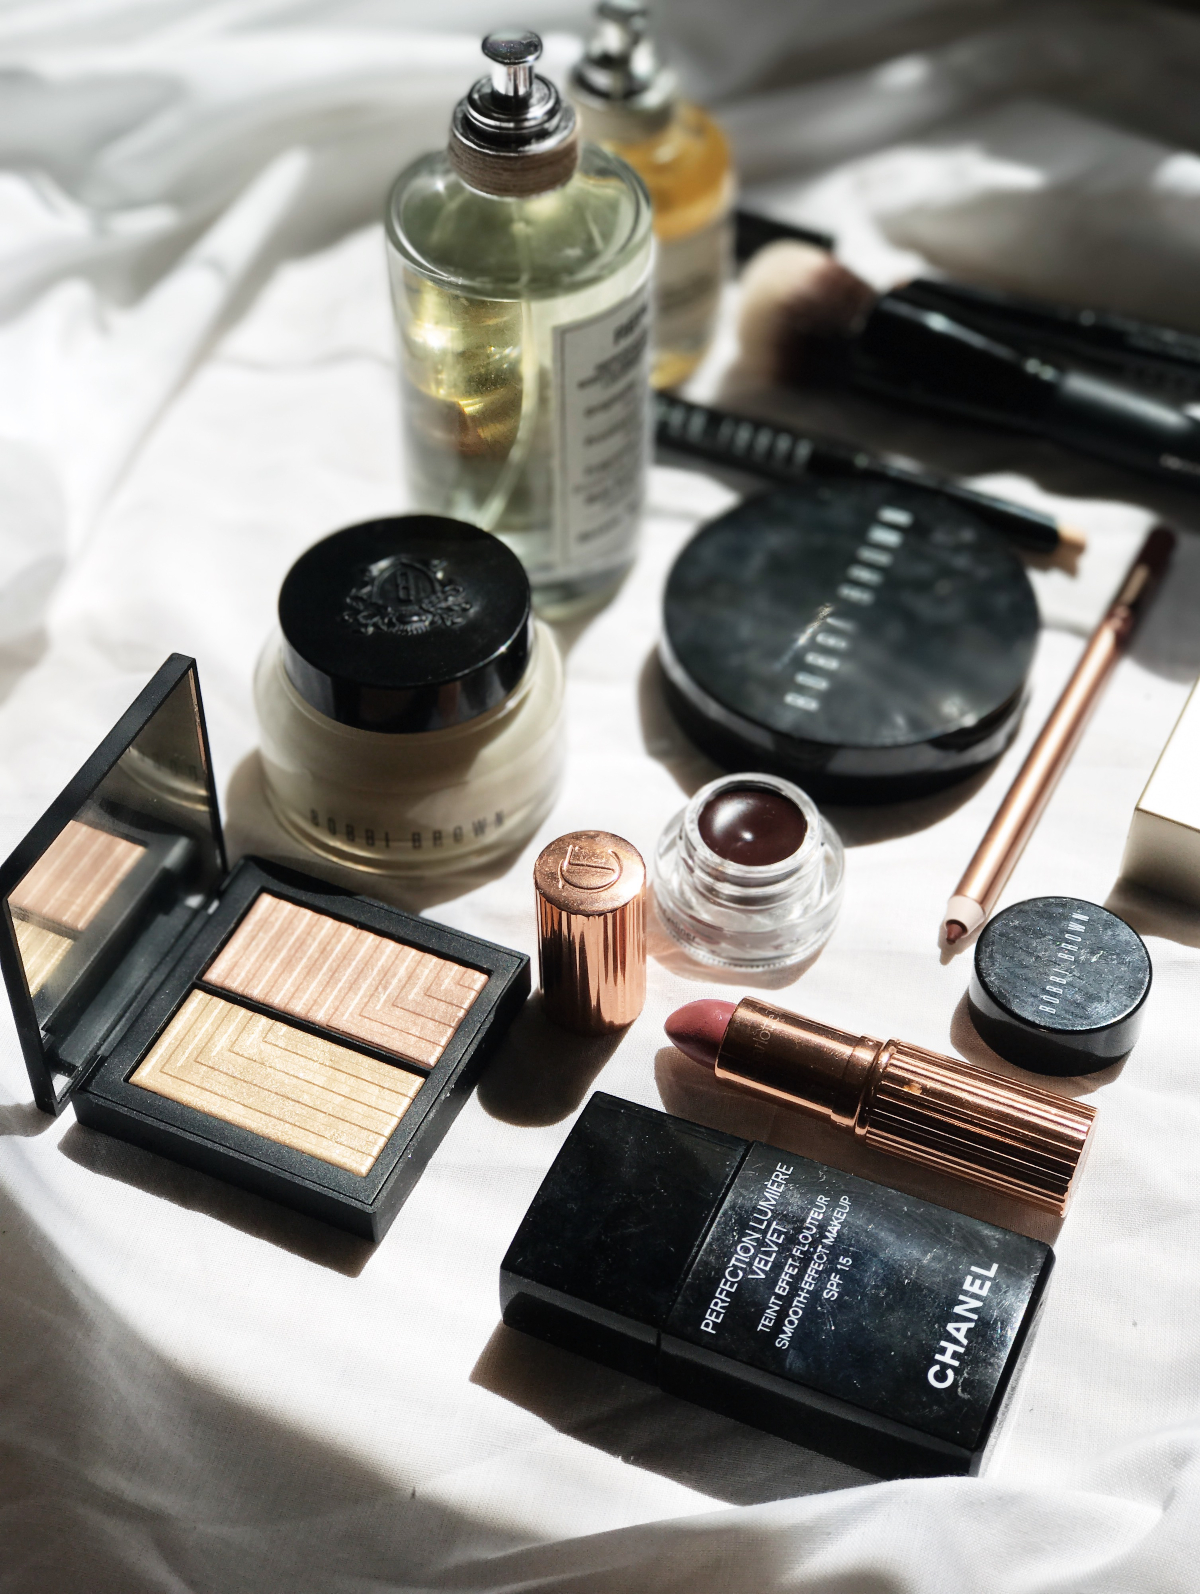 How 2020 Has Shaped My Beauty Spending Habits